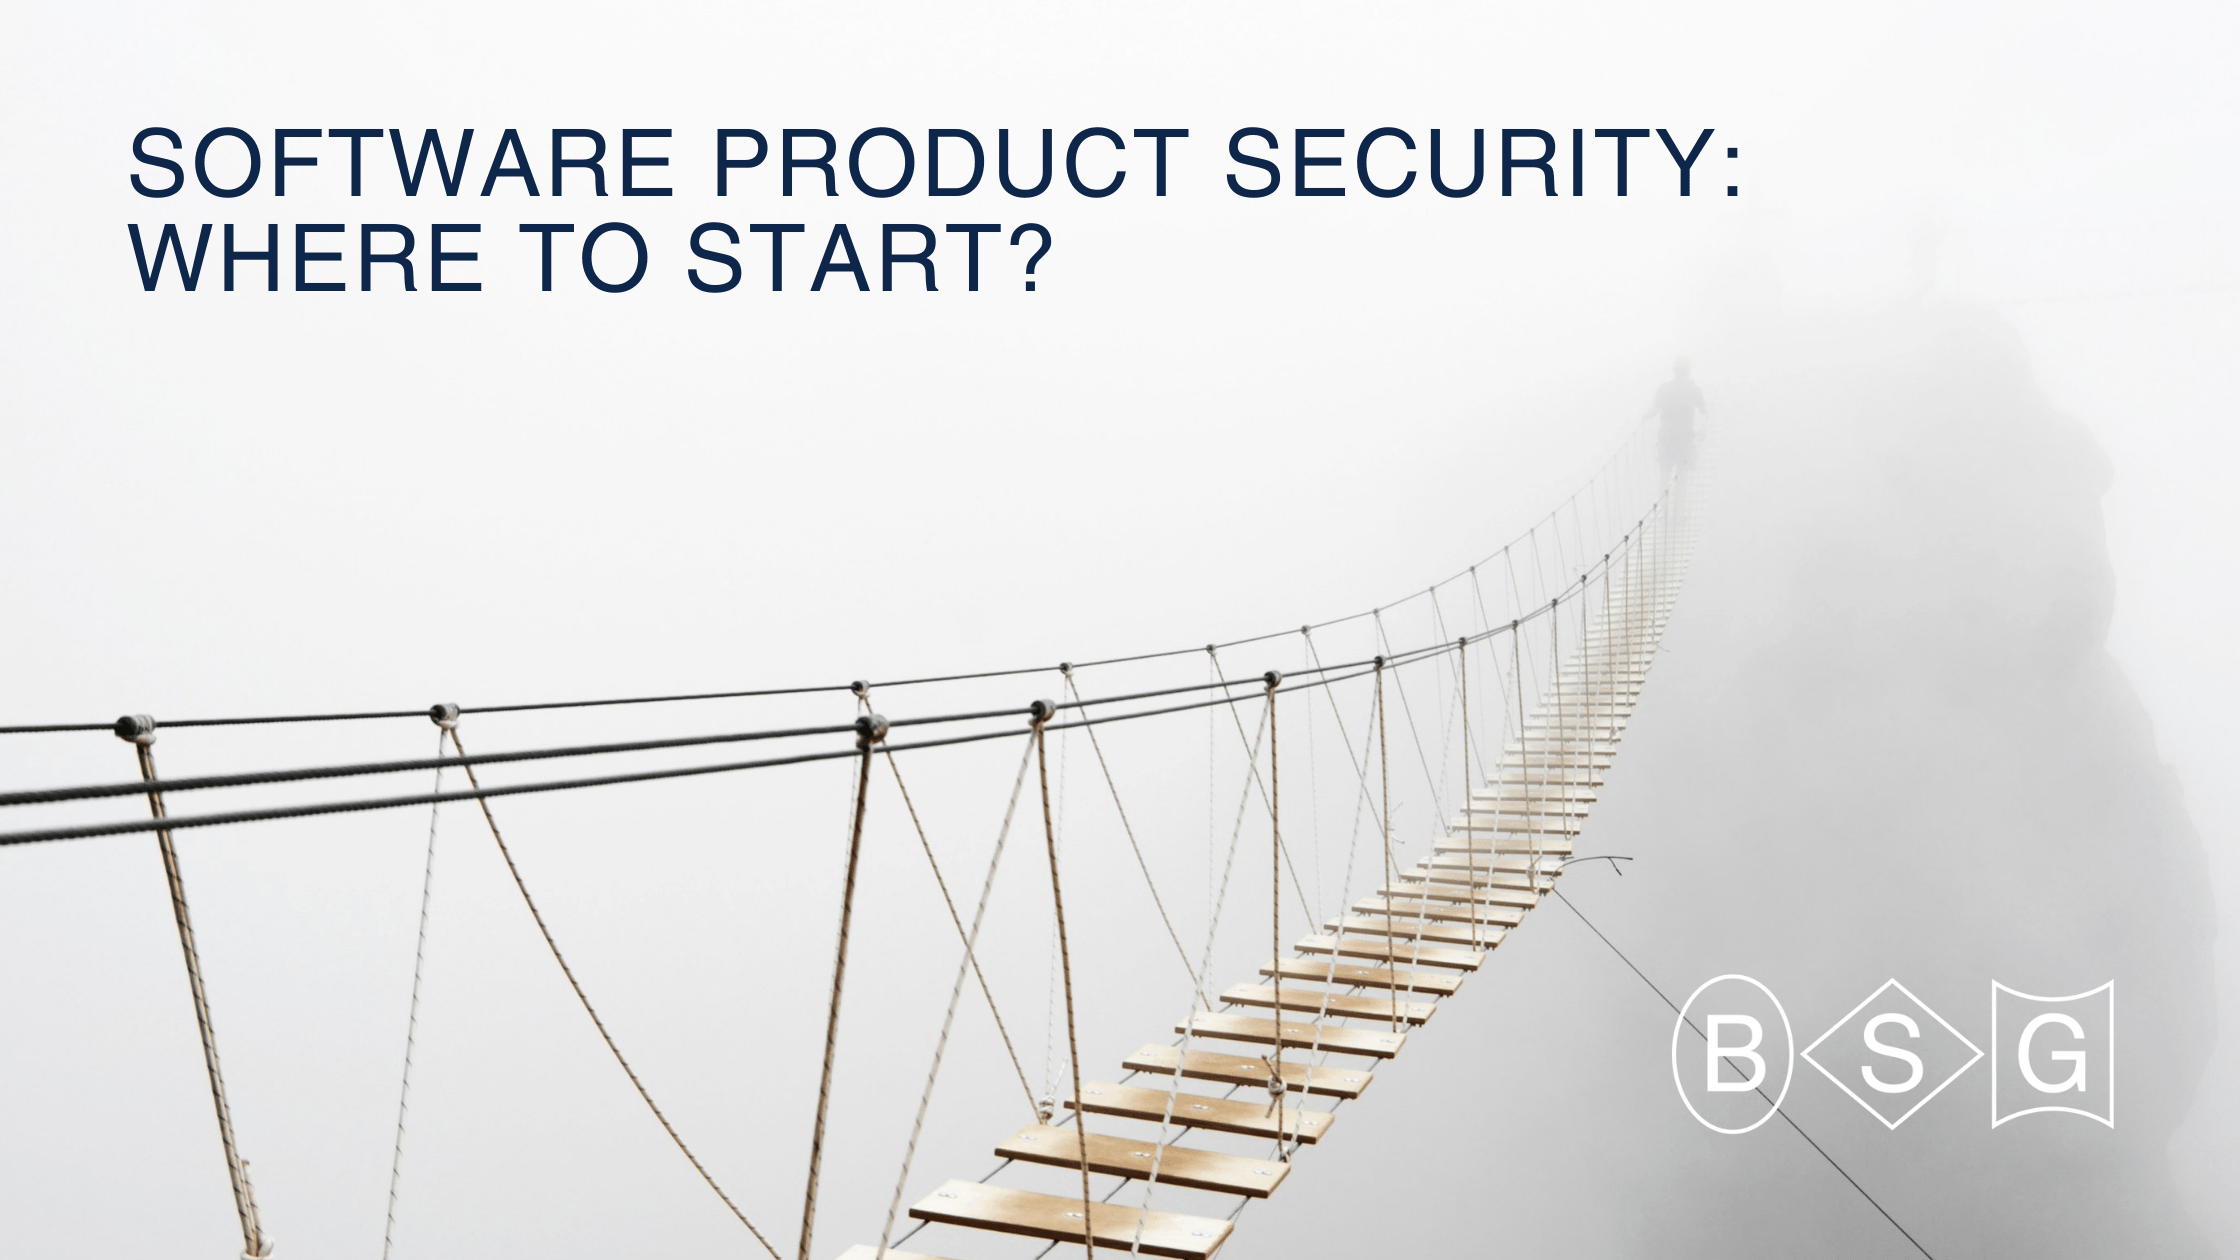 Software Product Security Where To Start